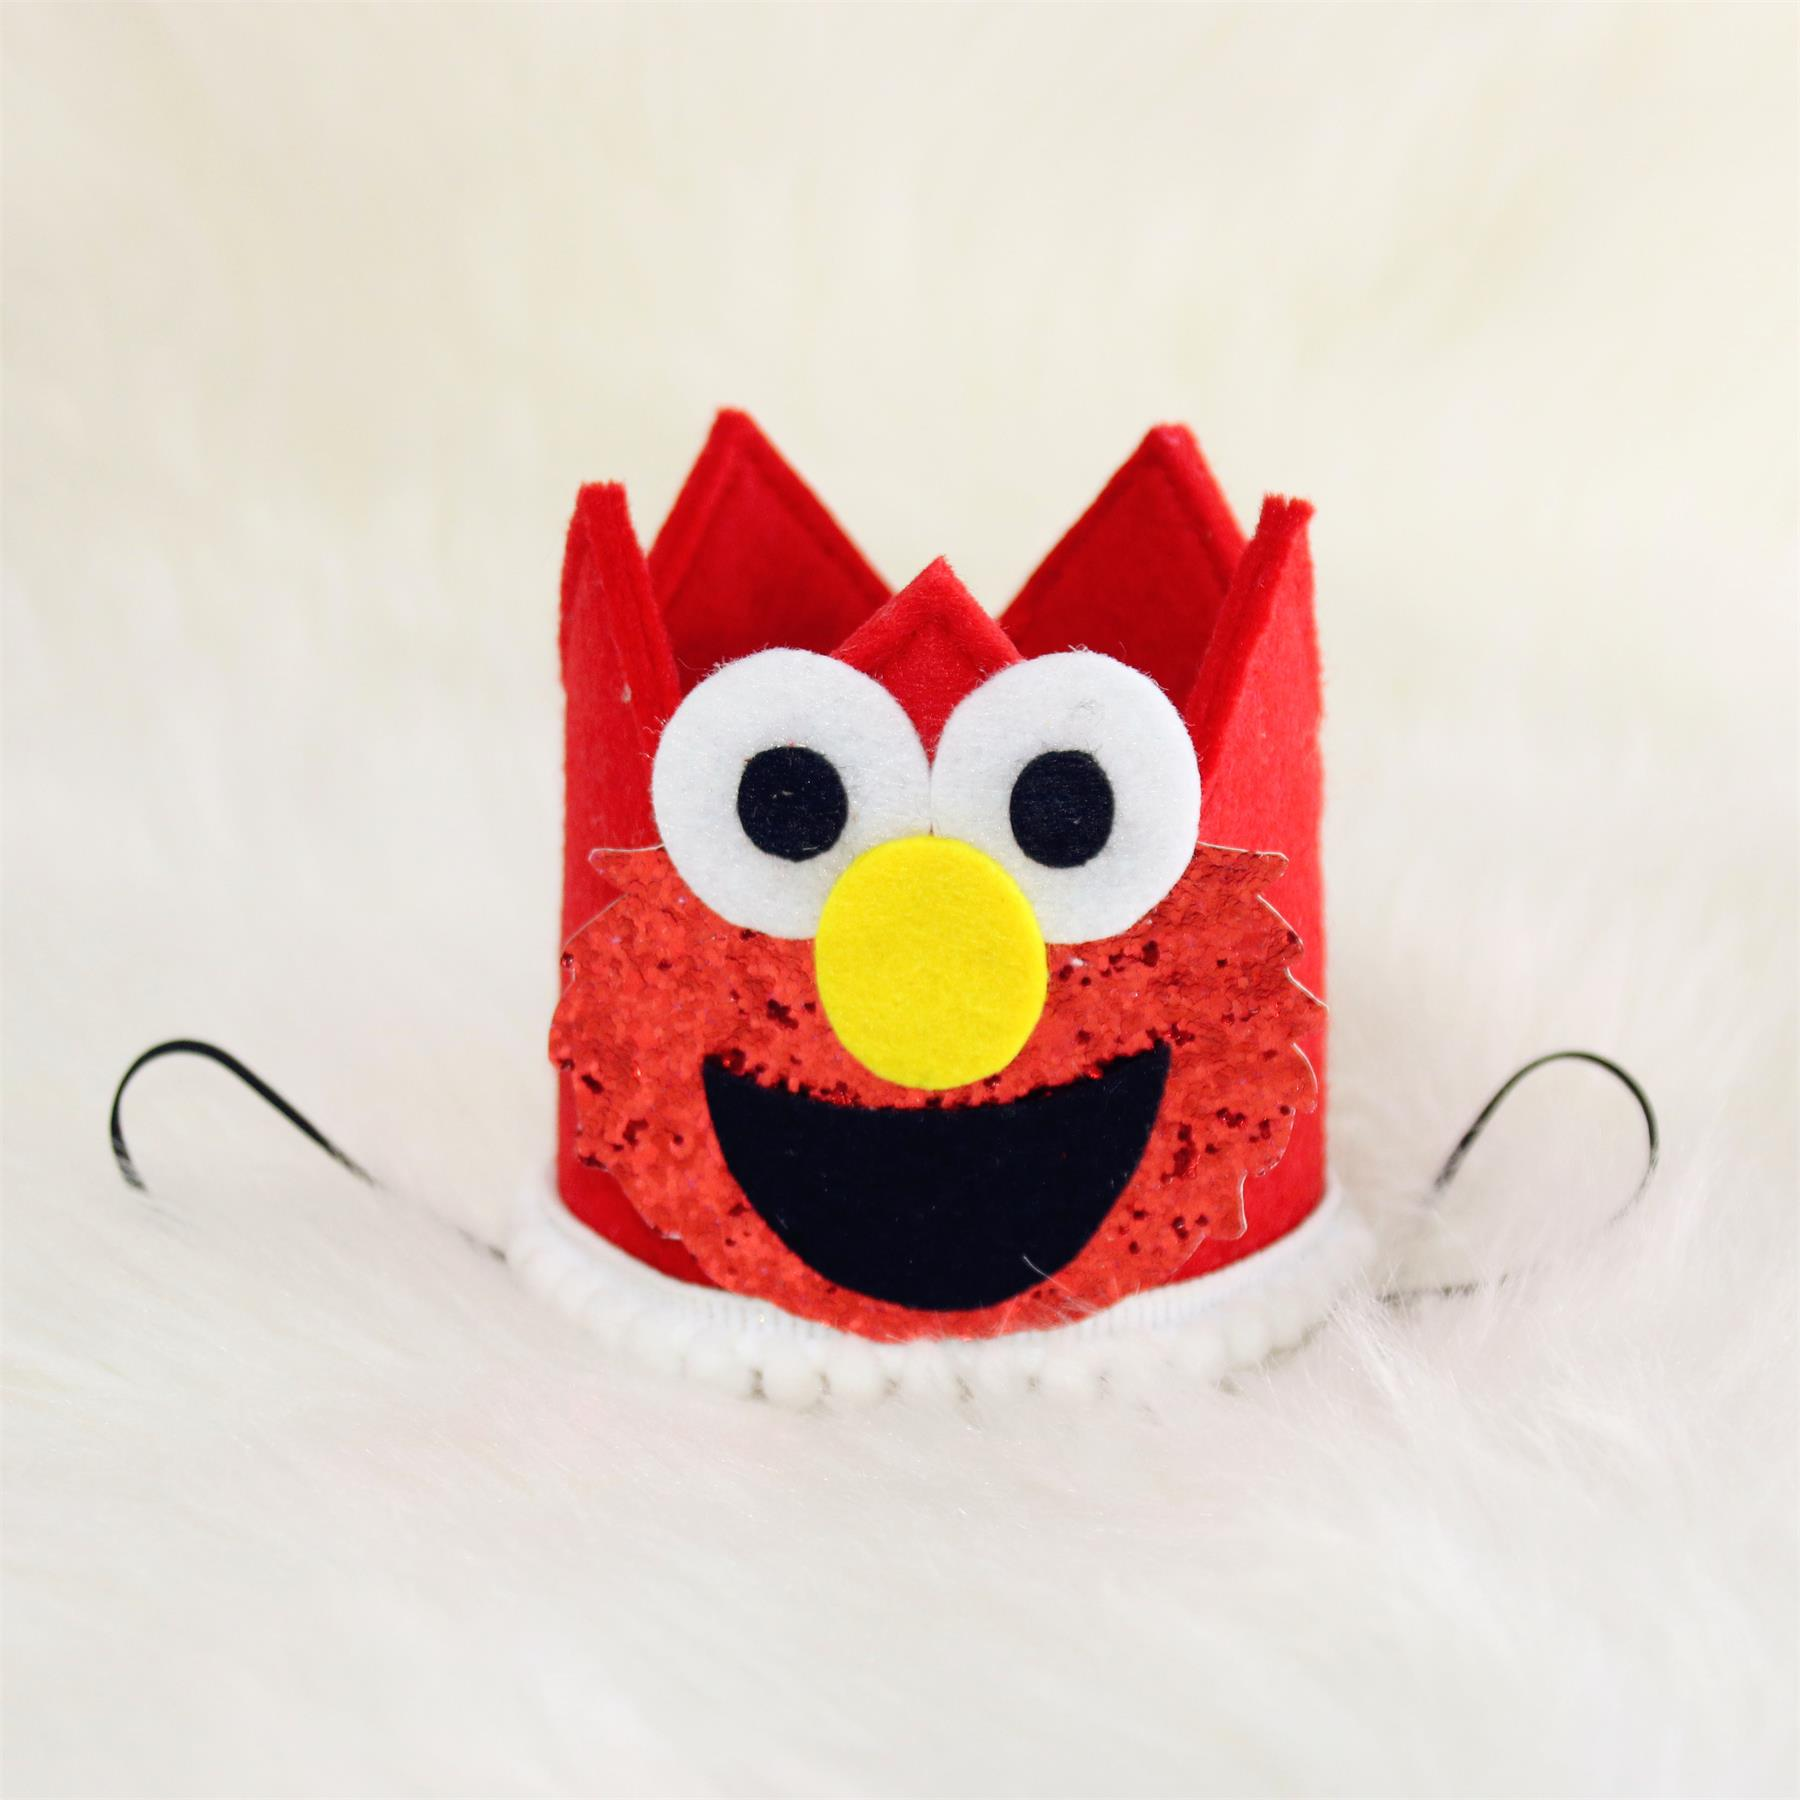 hot pink lavender and red elmo birthday crown Custom elmo birthday crown headband